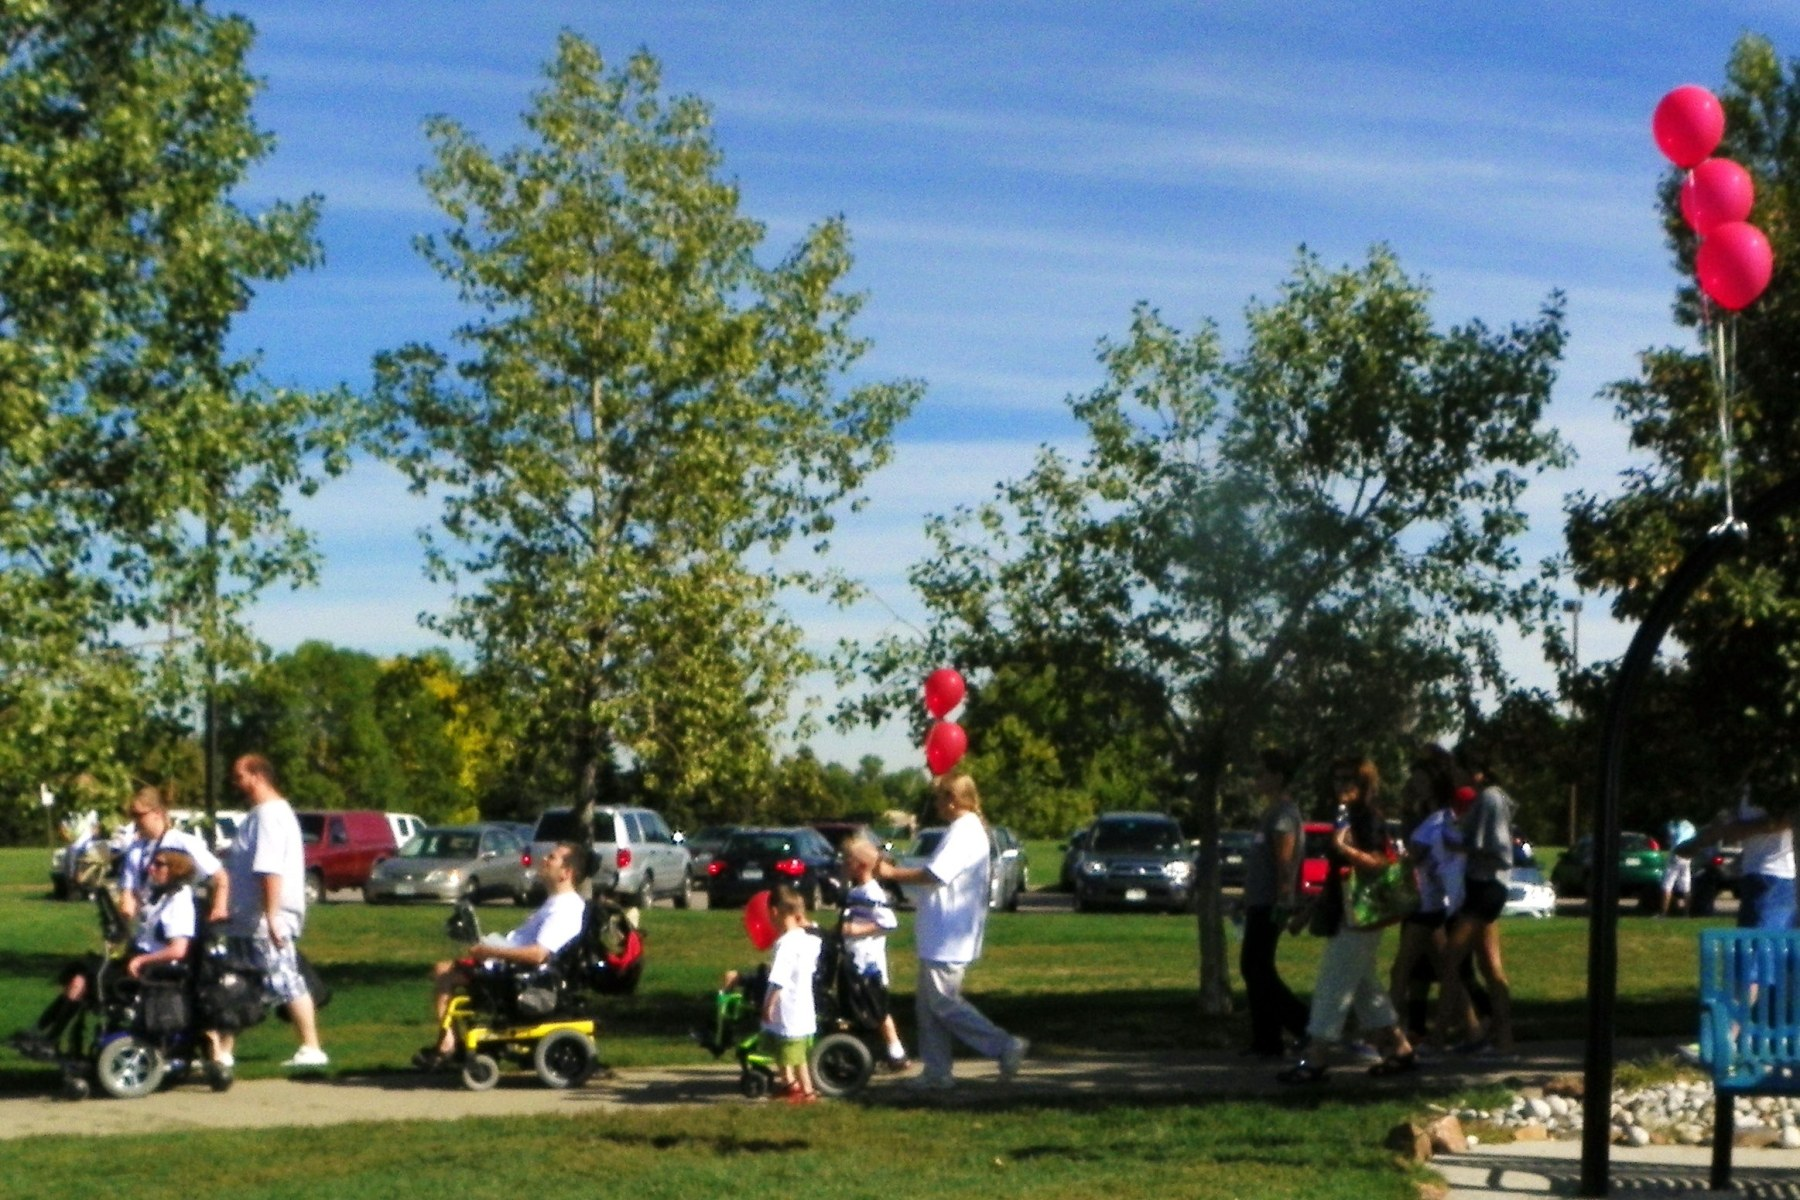 Participants in the 2011 Walk 'n' Roll at Clement Park in Littleton